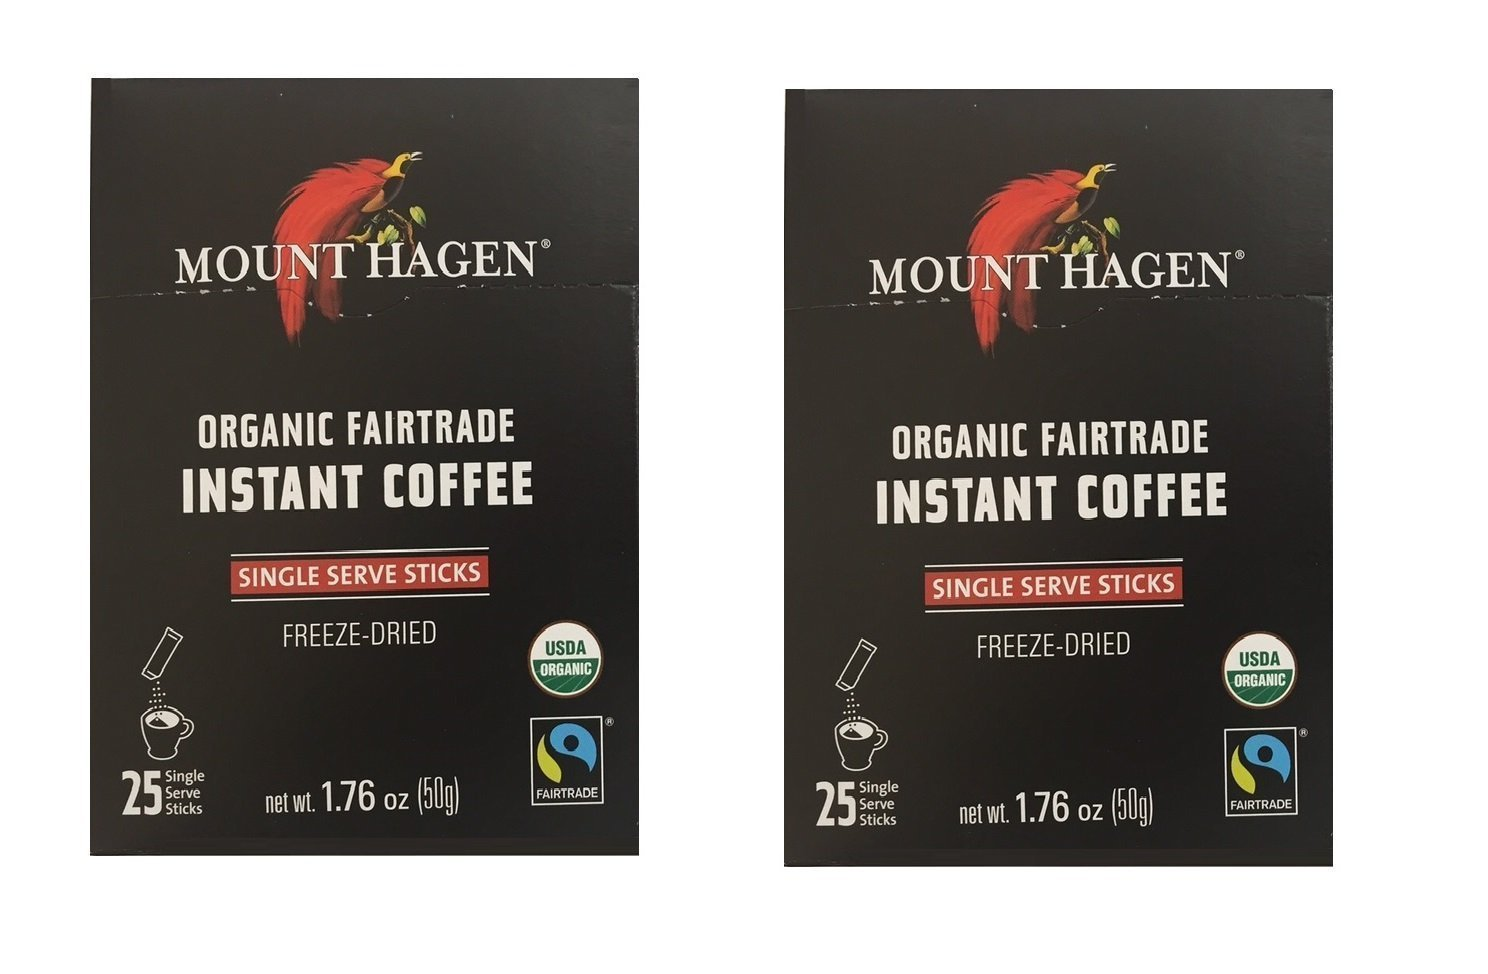 Mount Hagen -REGULAR Organic Instant Coffee Freeze Dried 25 Single Serve Packets- 1.76 Oz Each, (Pack of 2) by Mount Hagen (Image #1)